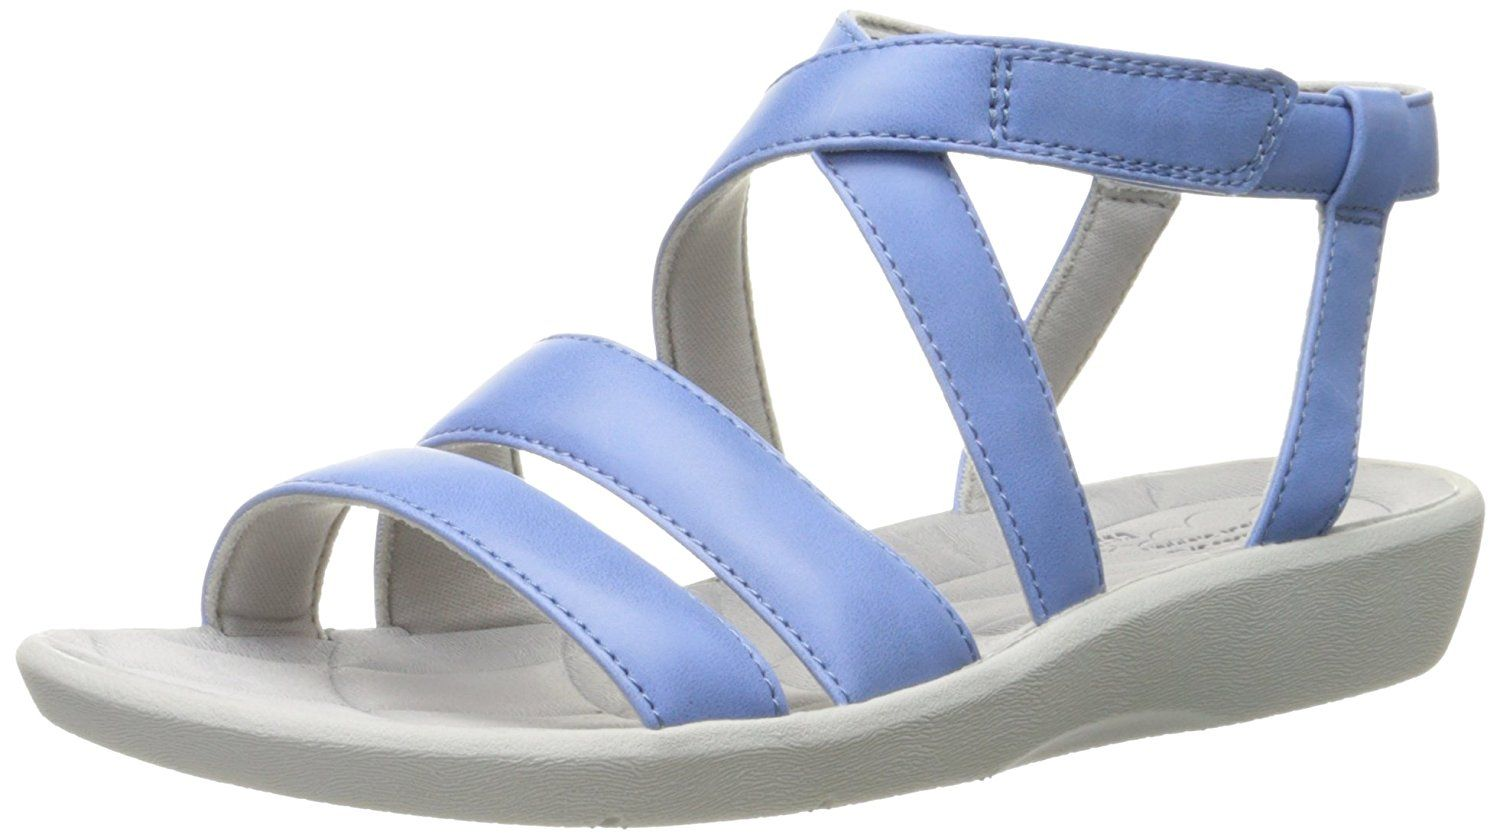 9334d0dbd53f Clarks Women s CloudSteppers Sillian Spade Sandal     Tried it! Love it!  Click the image.   Gladiator sandals